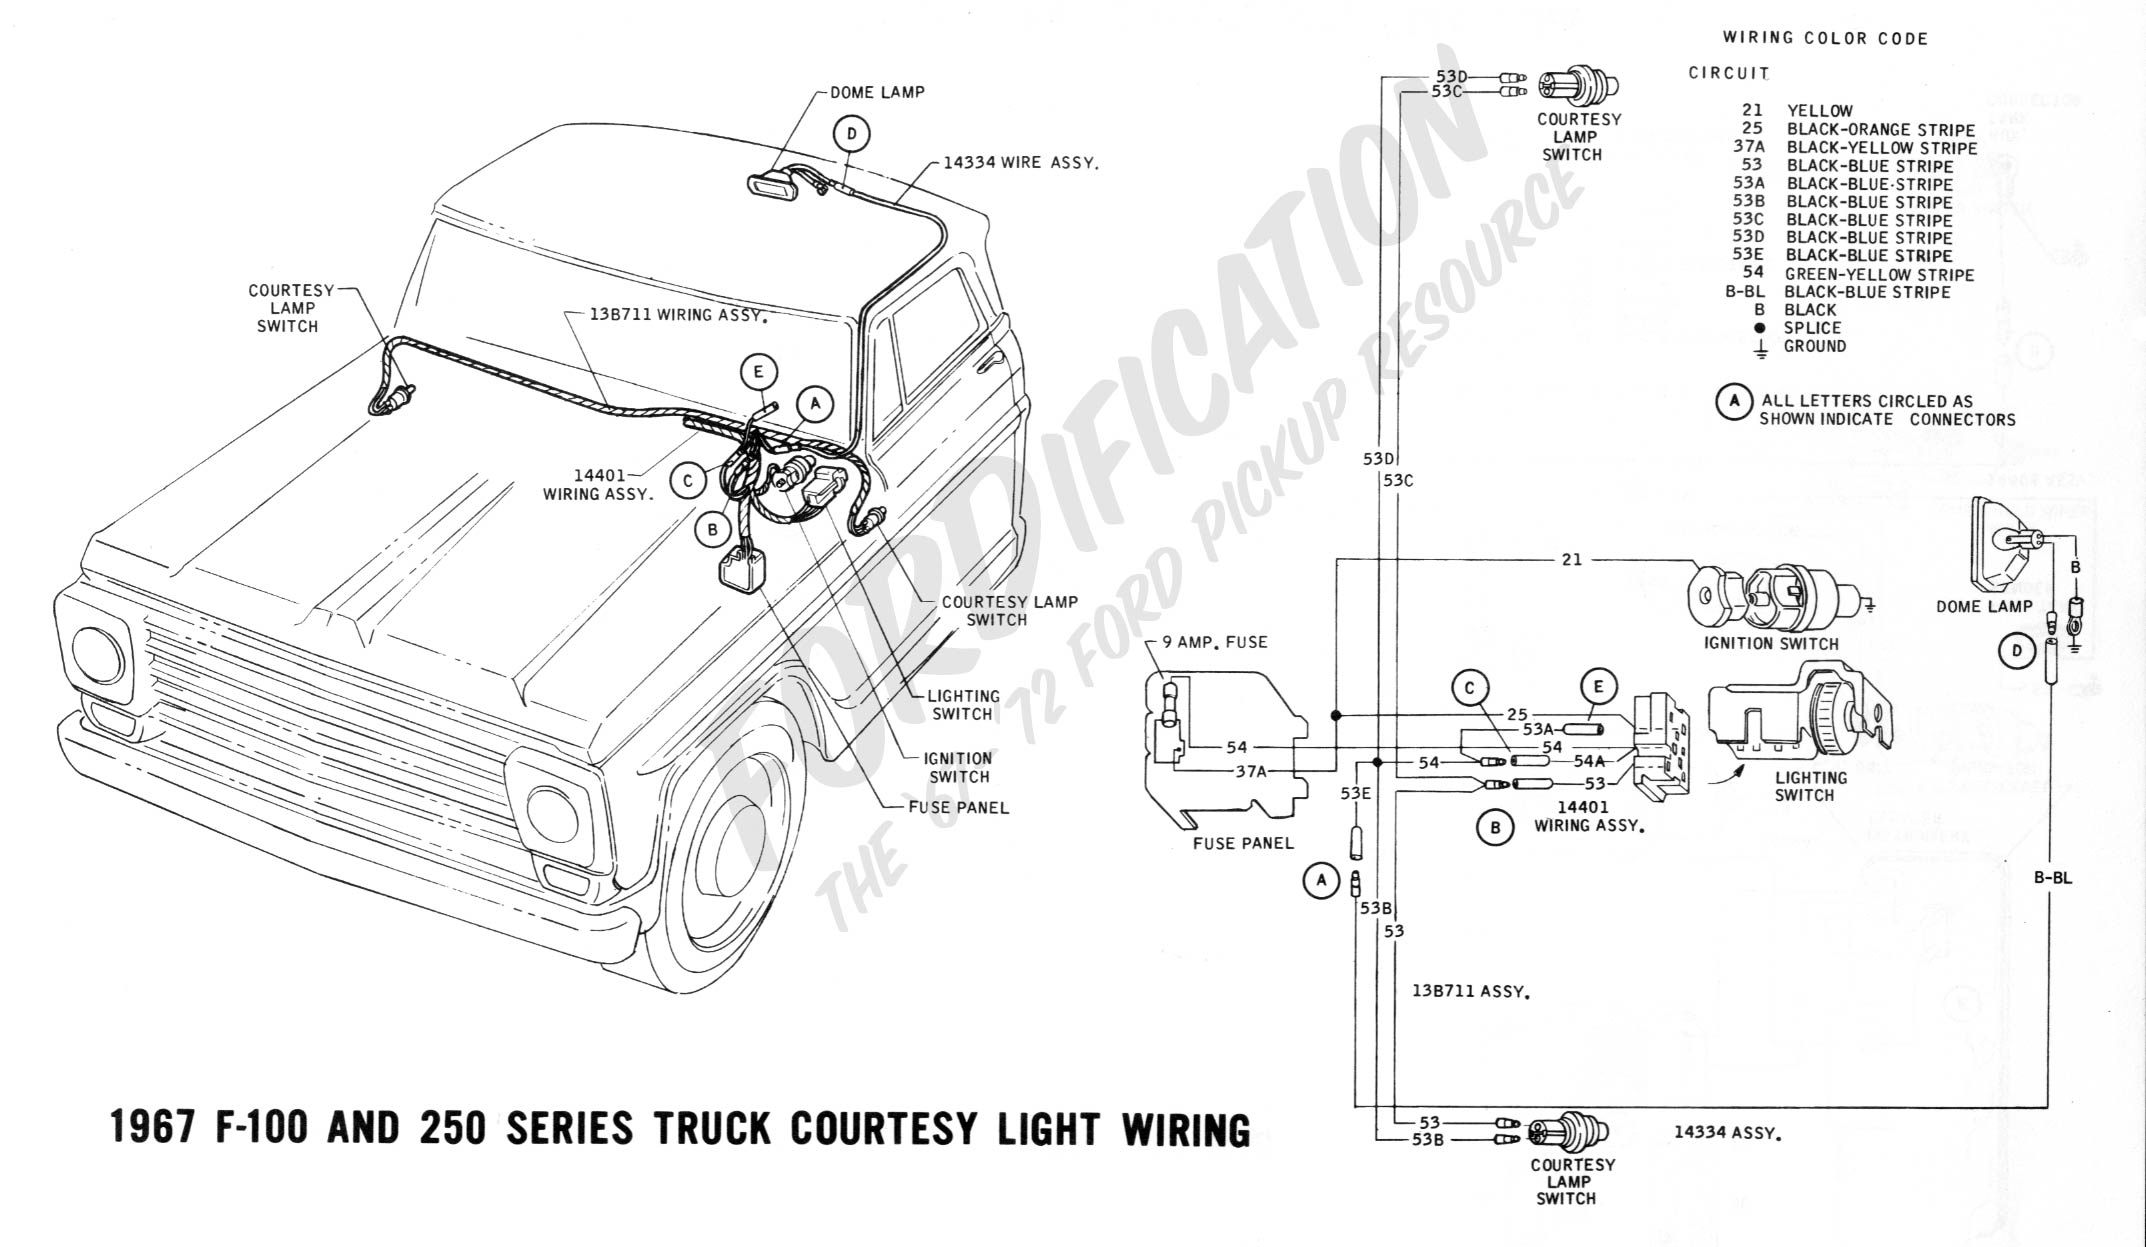 wiring 1967courtesylight ford truck technical drawings and schematics section h wiring ford ignition switch diagram at bakdesigns.co